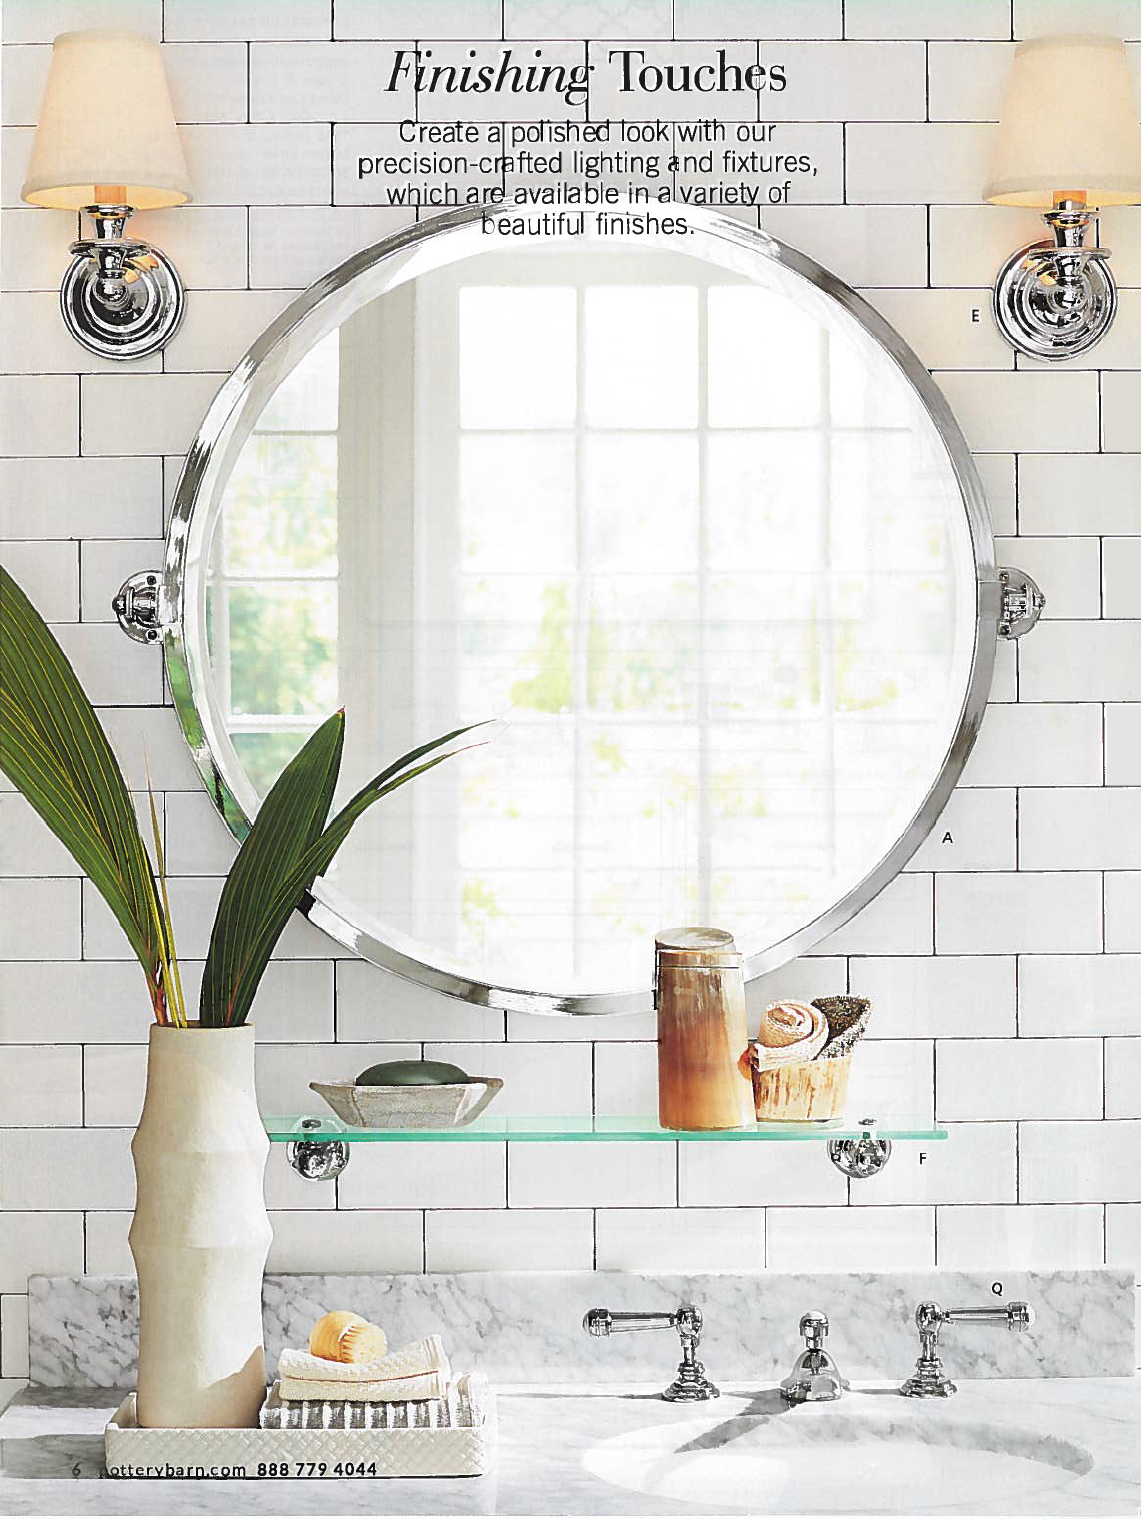 Kensington Round Pivot Mirror Pivot Bathroom Mirror